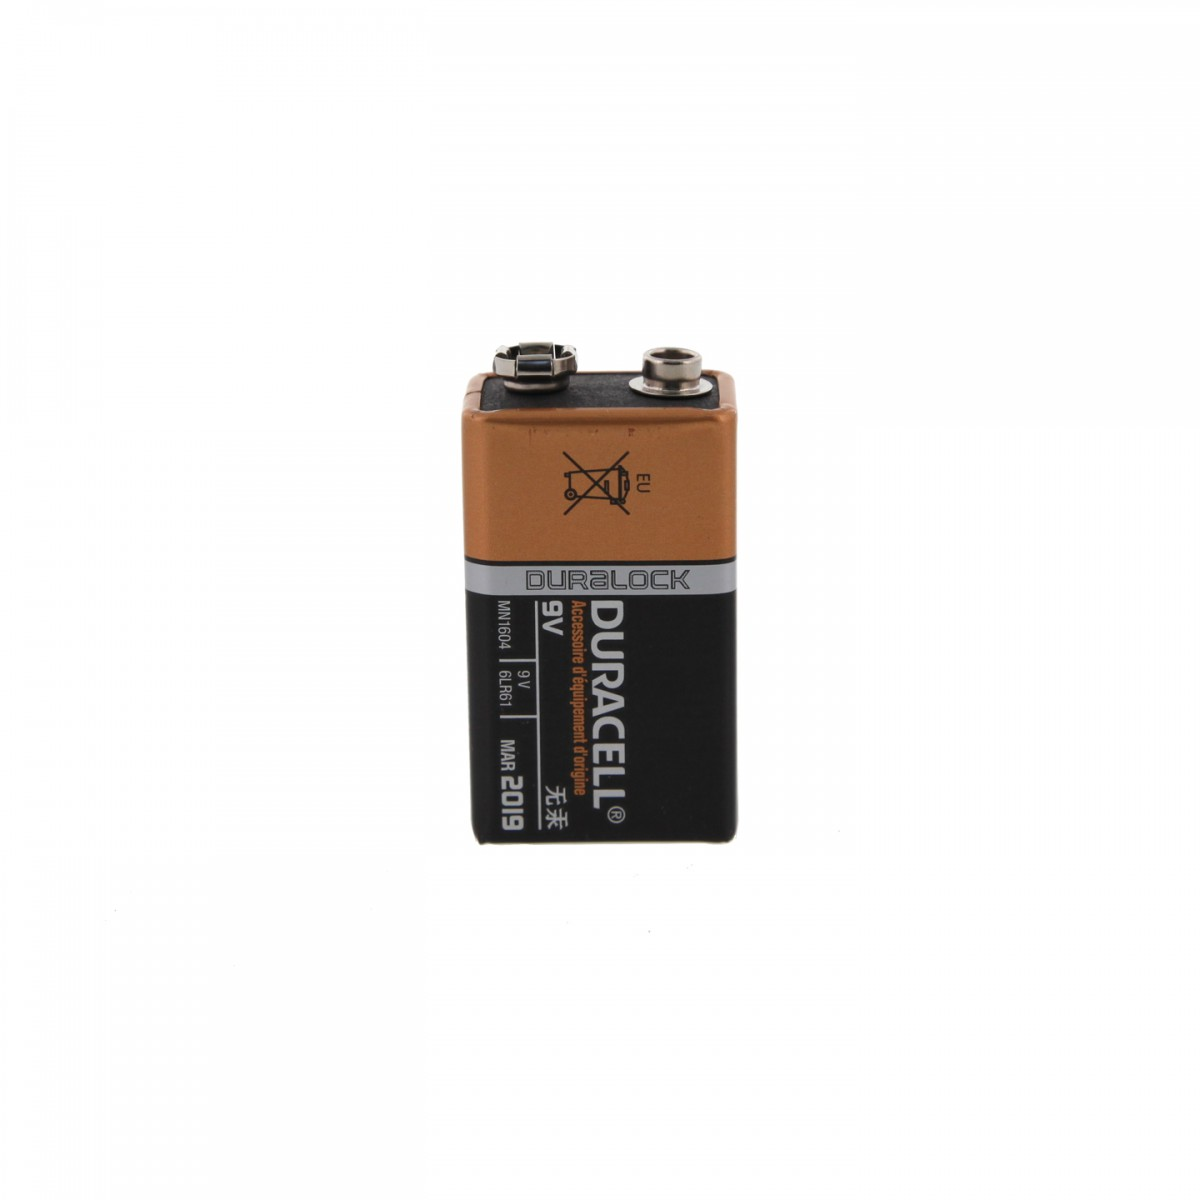 image relating to Duracell Battery Coupons Printable identified as Duracell 9v battery coupon : Ninja cafe nyc coupon codes